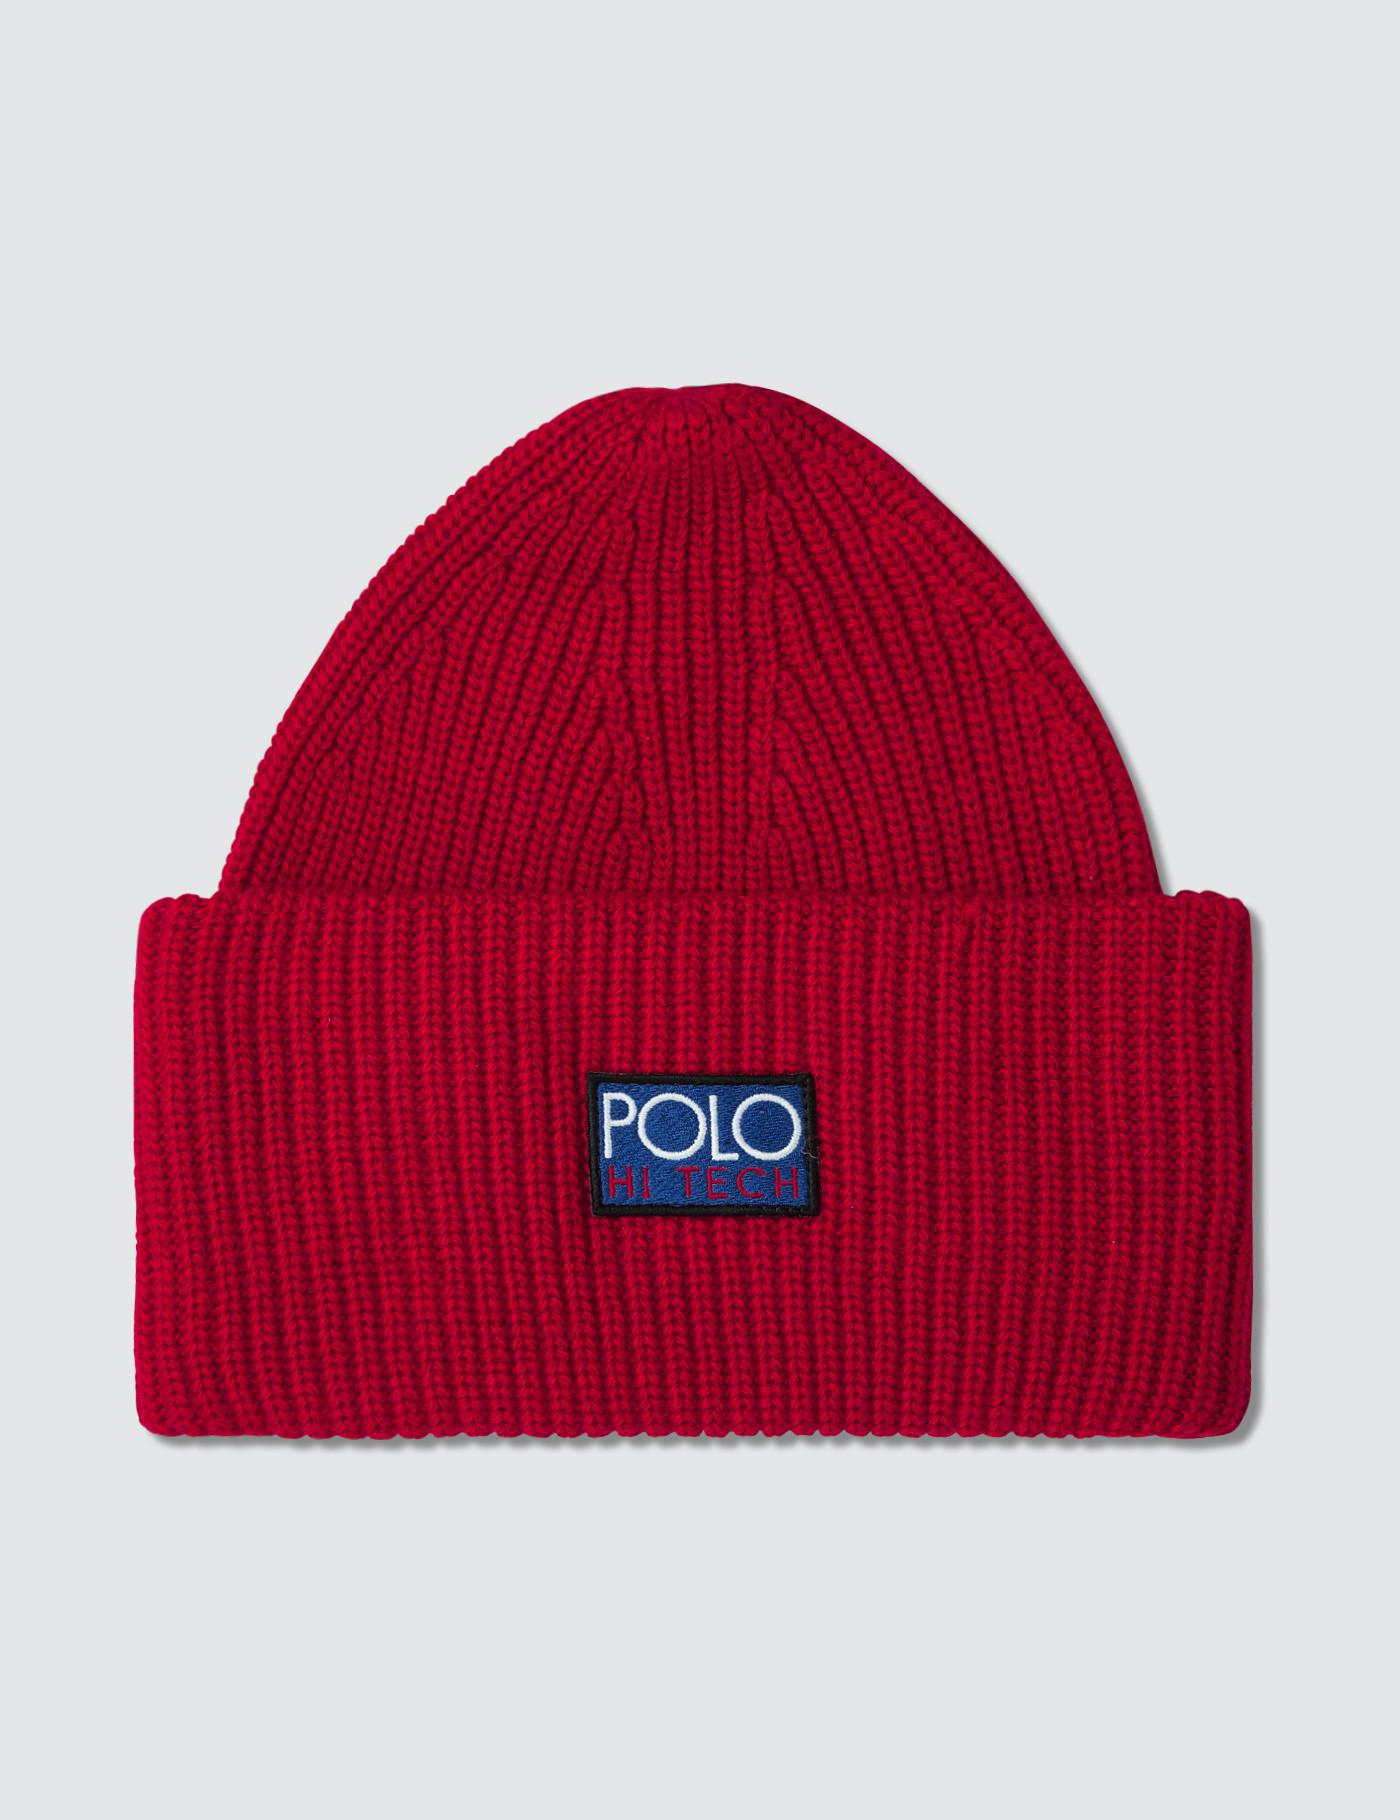 Lyst - Polo Ralph Lauren Hi Tech Beanie in Red for Men - Save 31% 916116ee253